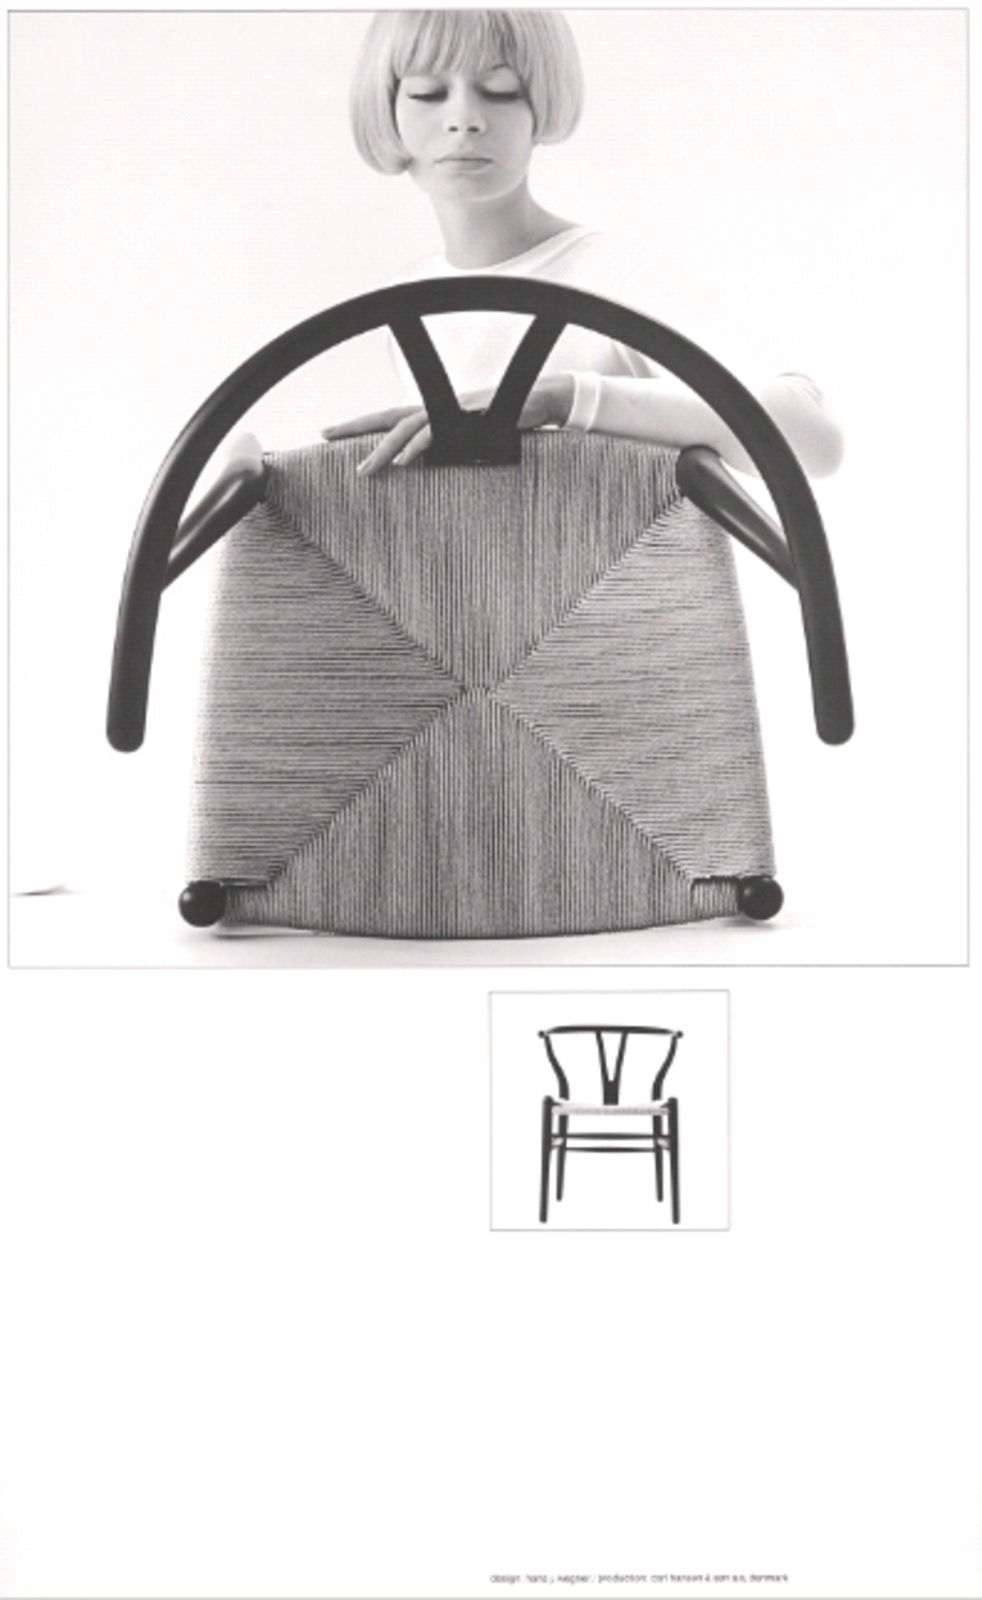 The Wishbone Chair (1949), also known as the Y Chair, marries a hand-woven seat and steam-bent frame. The chair, an undisputed modern icon, has been in continuous production since its introduction by Carl Hansen in 1950. Inspired by portraits of Danish merchants sitting in Ming chairs, this was the culmination of a series of chairs created in the '40s.  Timeless Iconic Design from Vintage Chair Posters Combine Pop Art and Danish Design